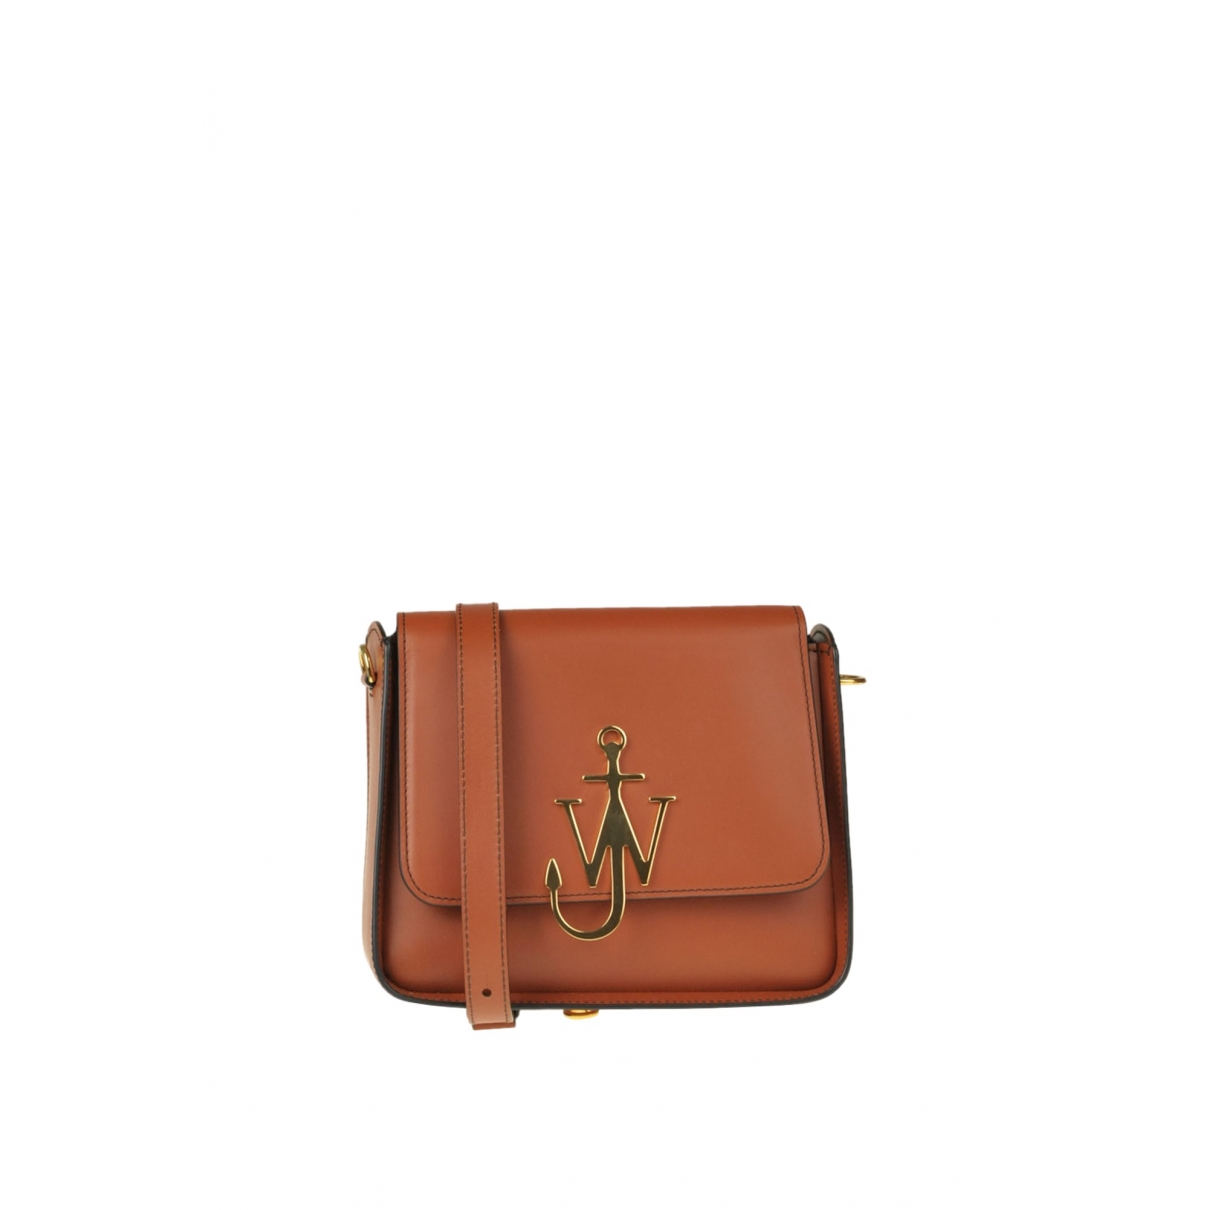 J.w. Anderson Logo Brown Leather handbag for Women \N